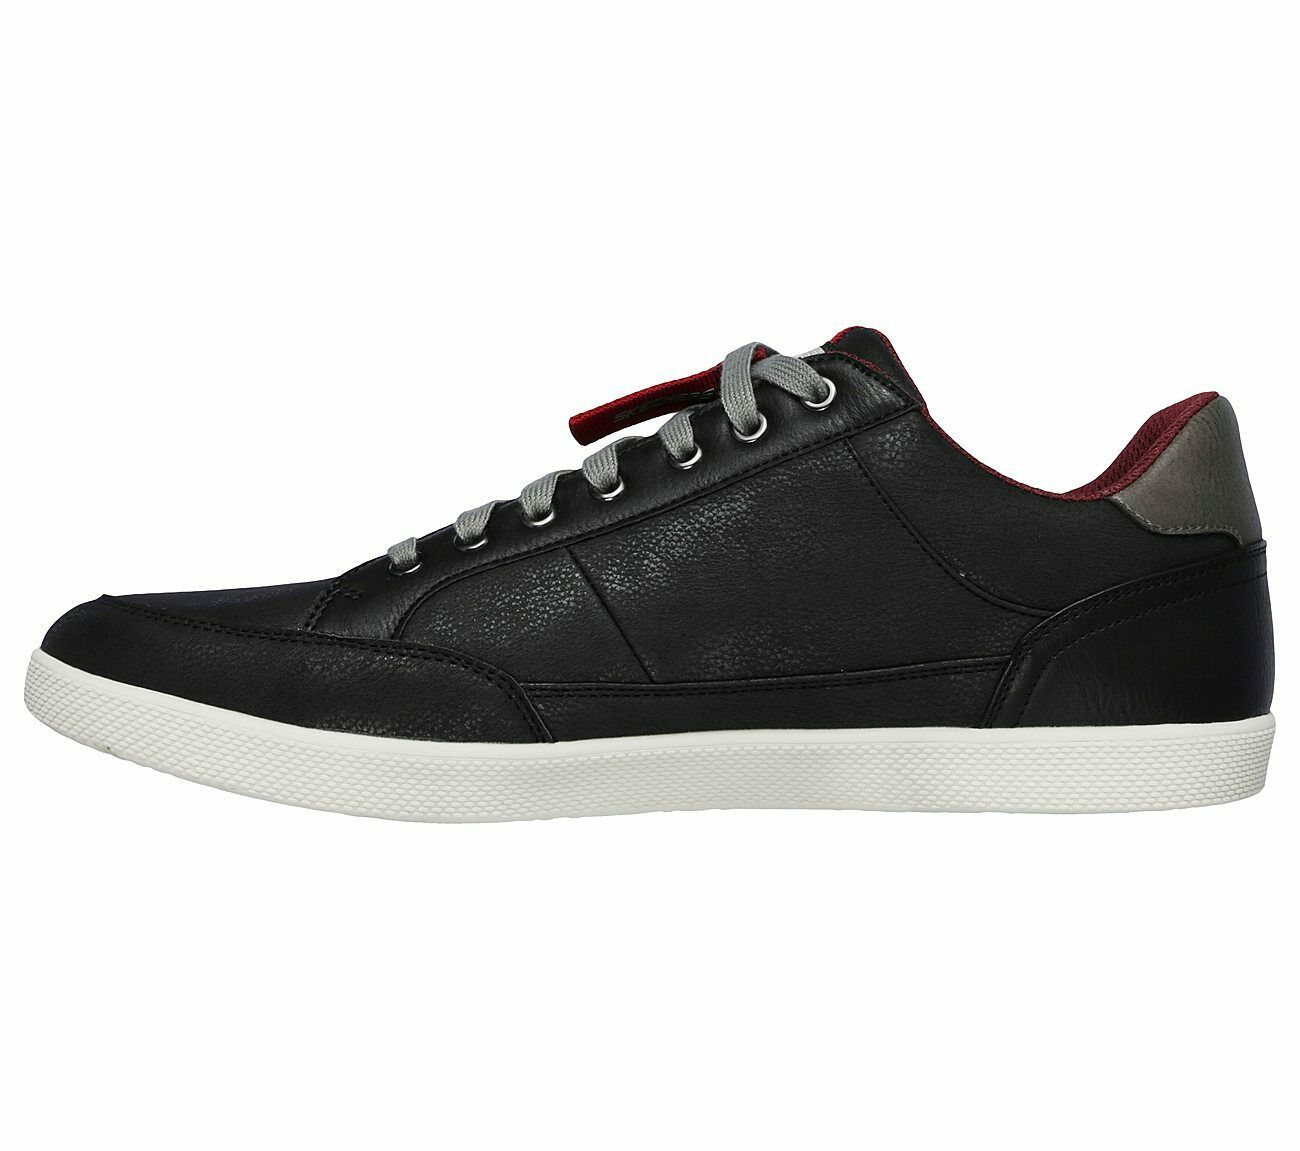 Mens Skechers Placer-Maneco Casual Memory Foam Lace Up Trainers Sizes 7 to 13